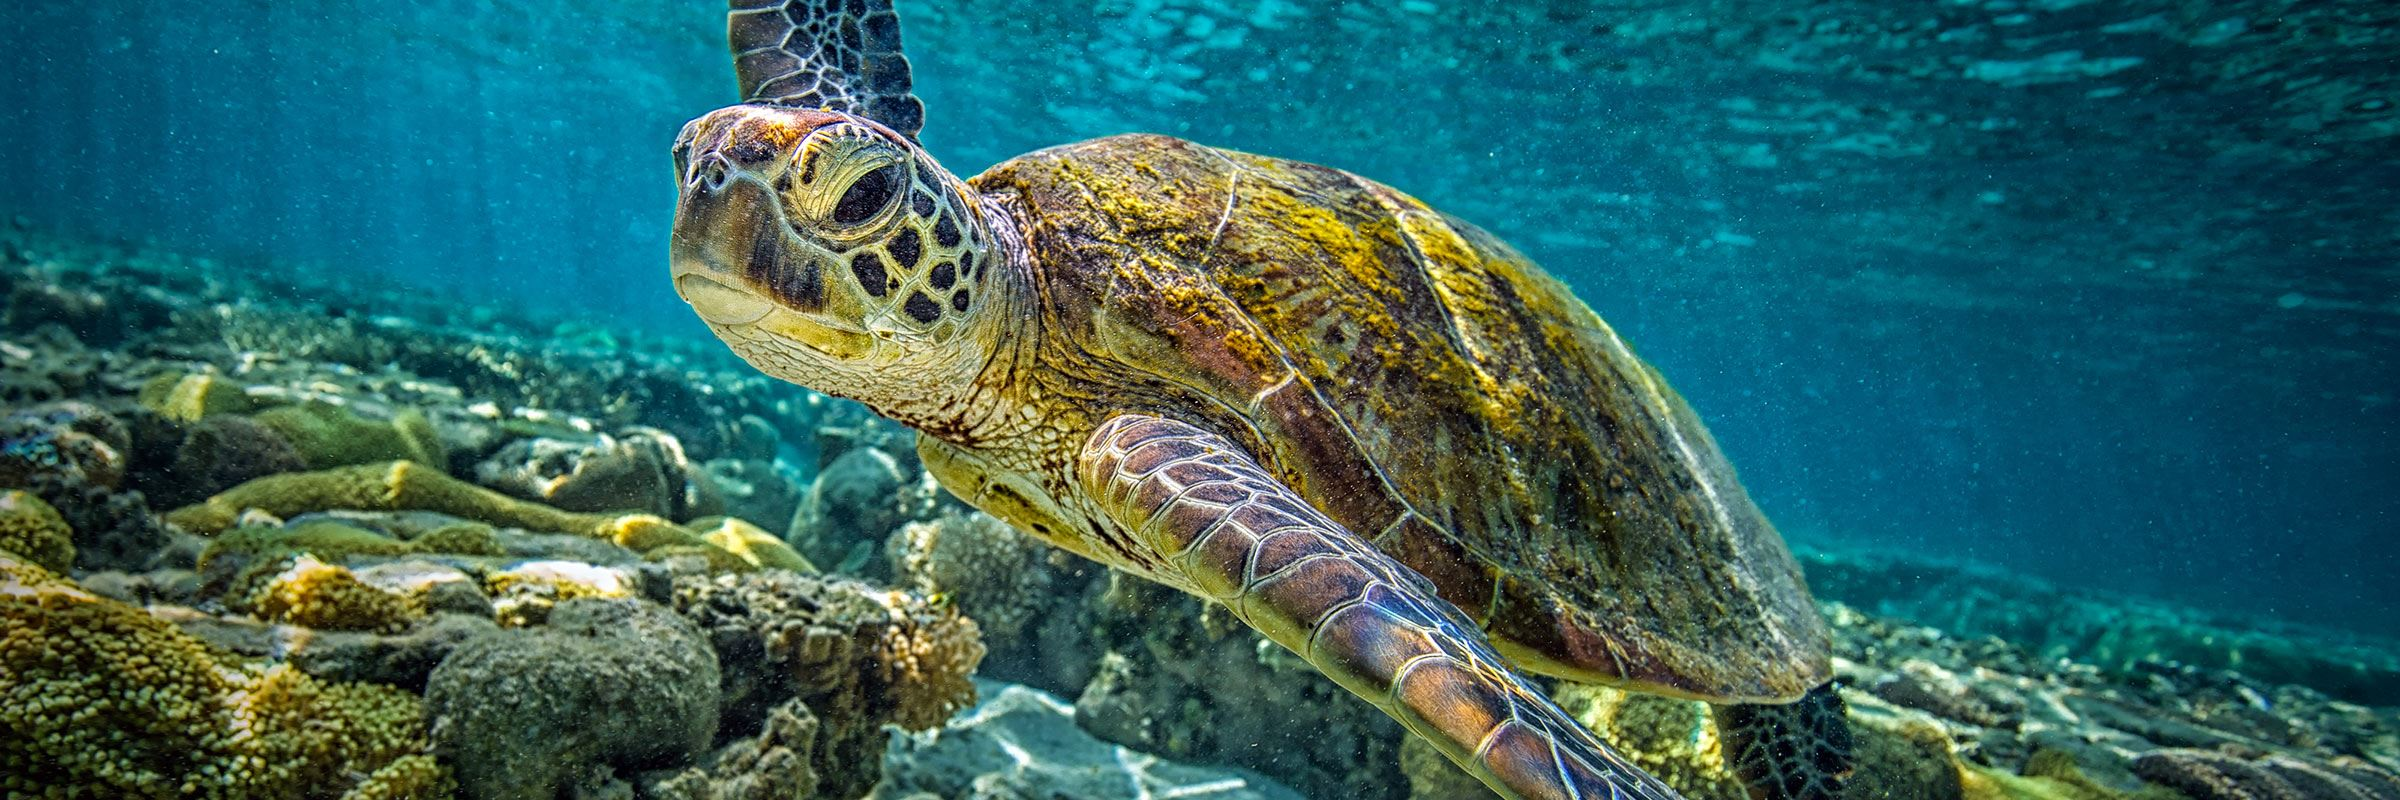 Green turtle on the Great Barrier Reef